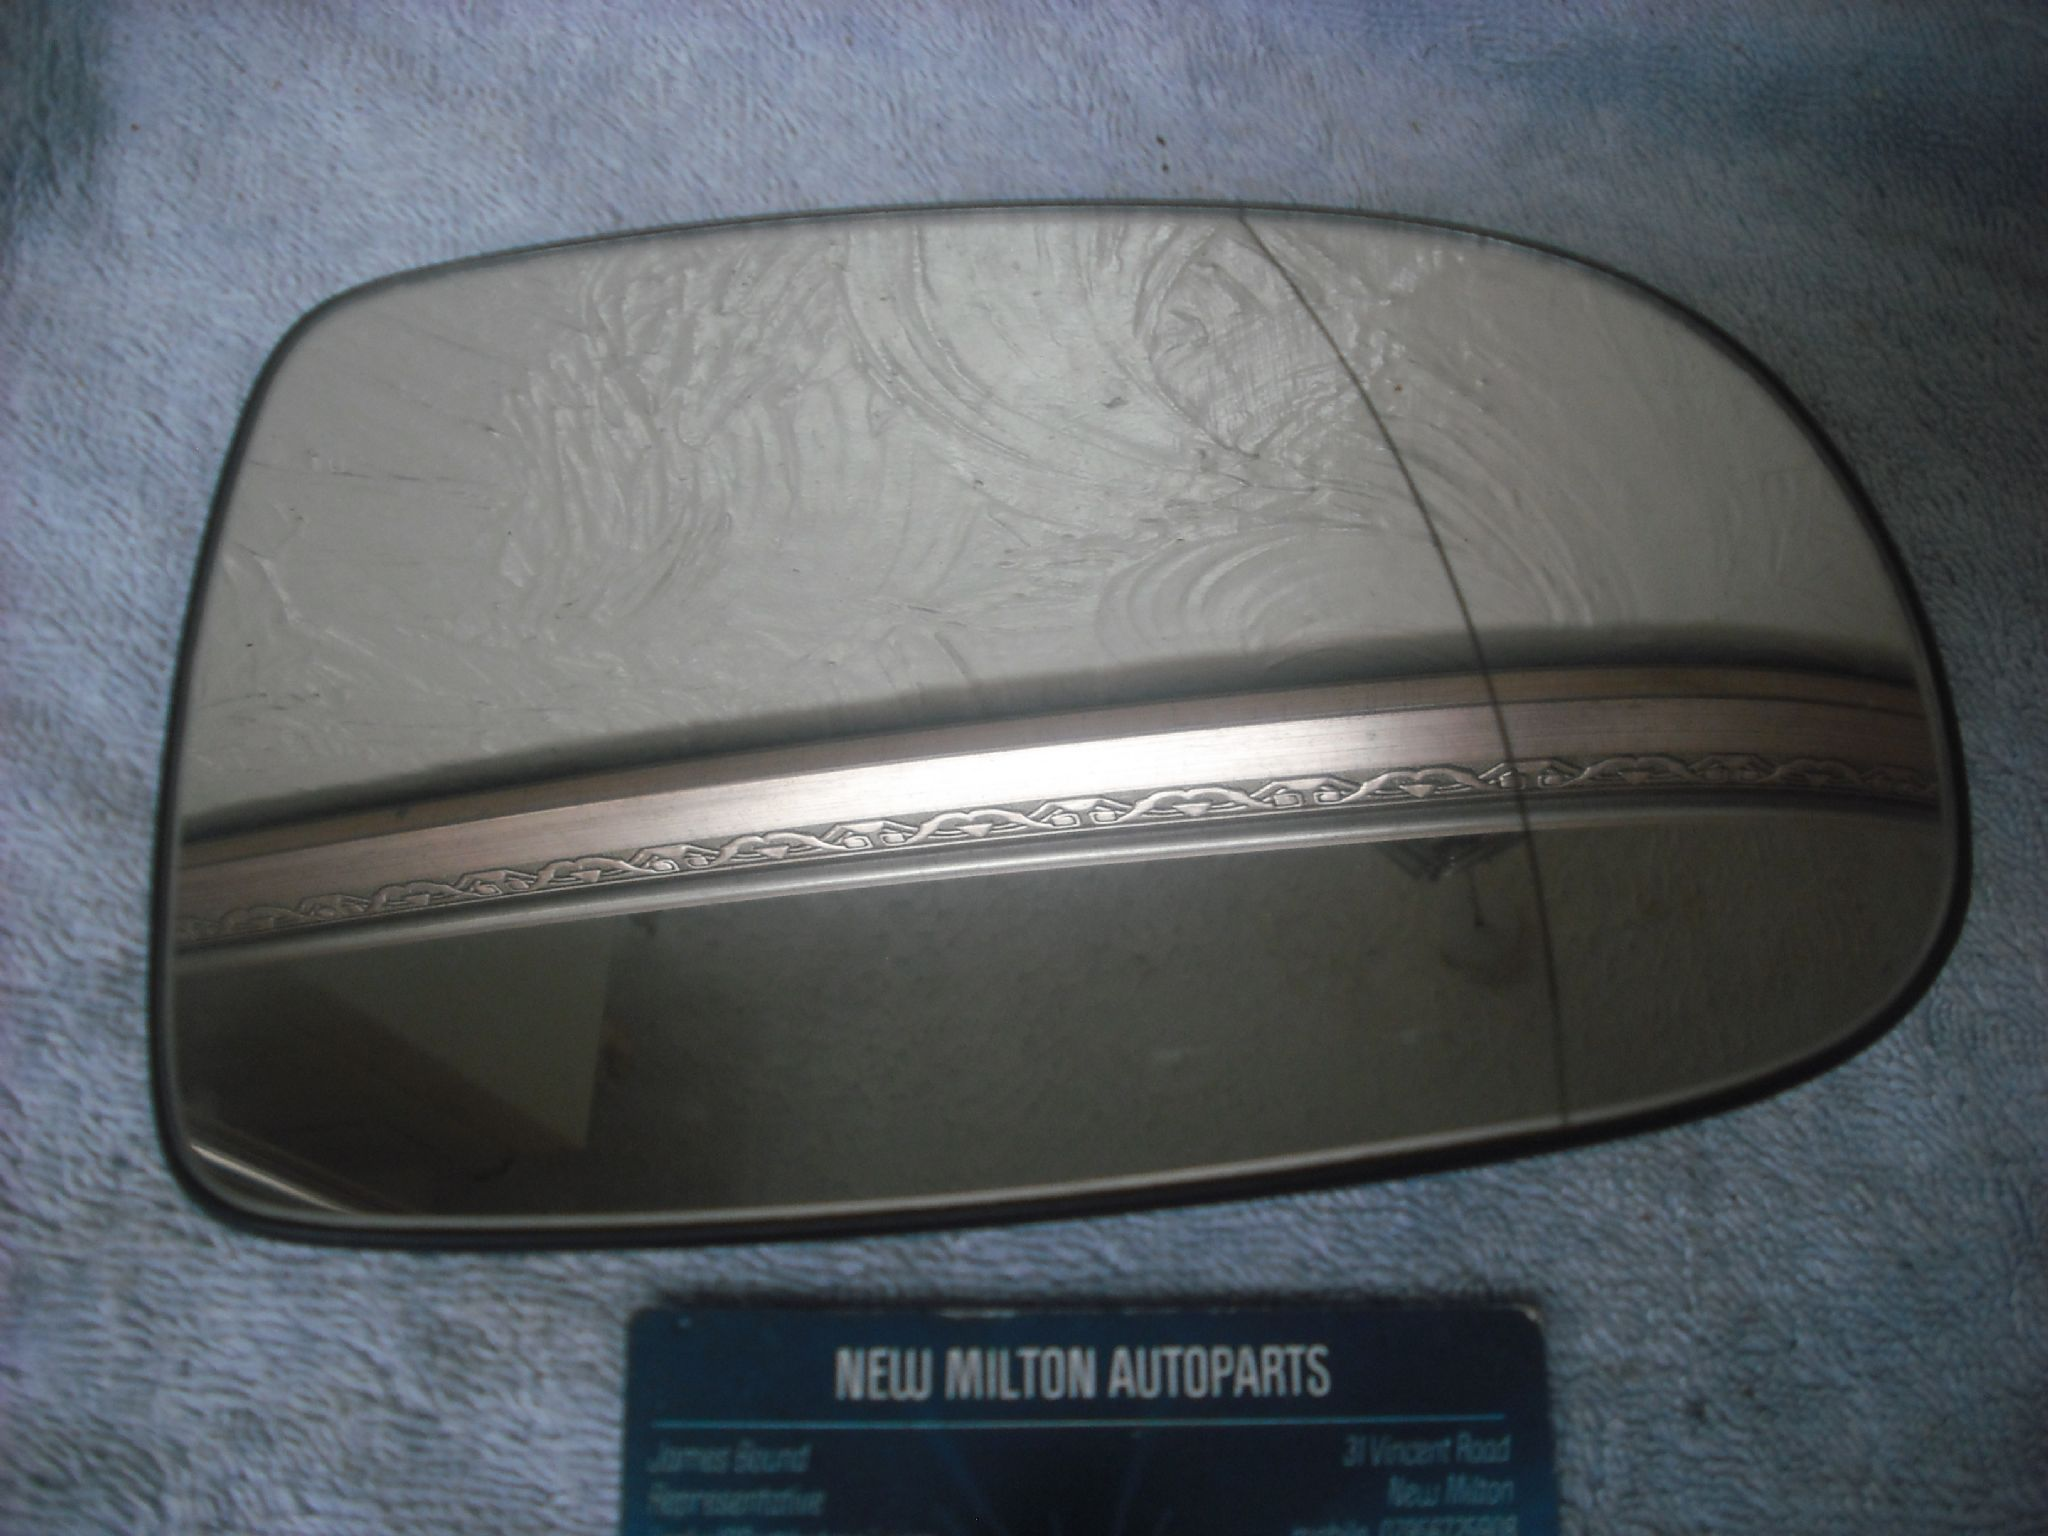 A VAUXHALL CORSA C 2000-2006 ELECTRIC HEATED DOOR MIRROR GLASS O/S RIGHT UK DRIVERS SIDE 065024 & A VAUXHALL CORSA C 2000-2006 ELECTRIC HEATED DOOR MIRROR GLASS O S ...